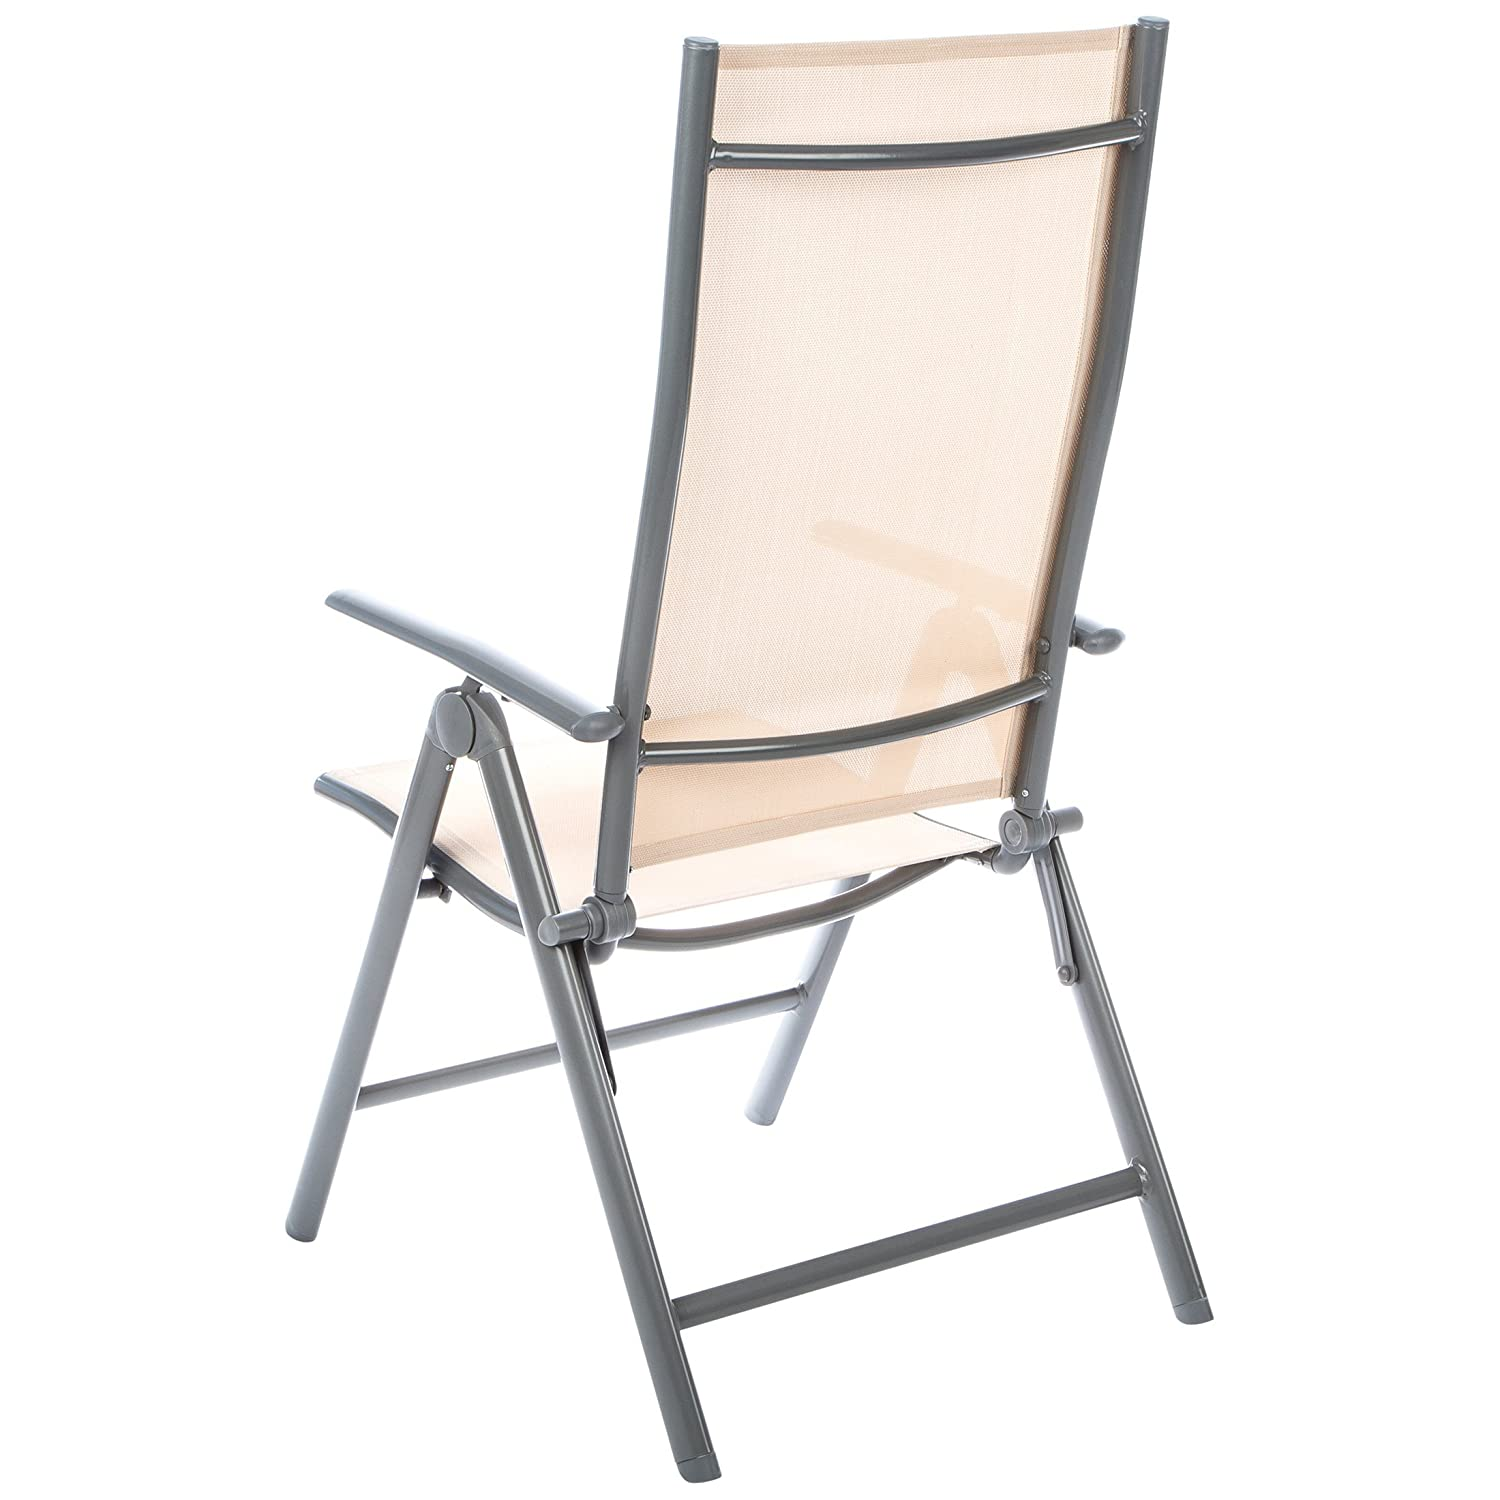 Ultranatura Korfu - Basic - Sillón Plegable de Aluminio, Color Beige